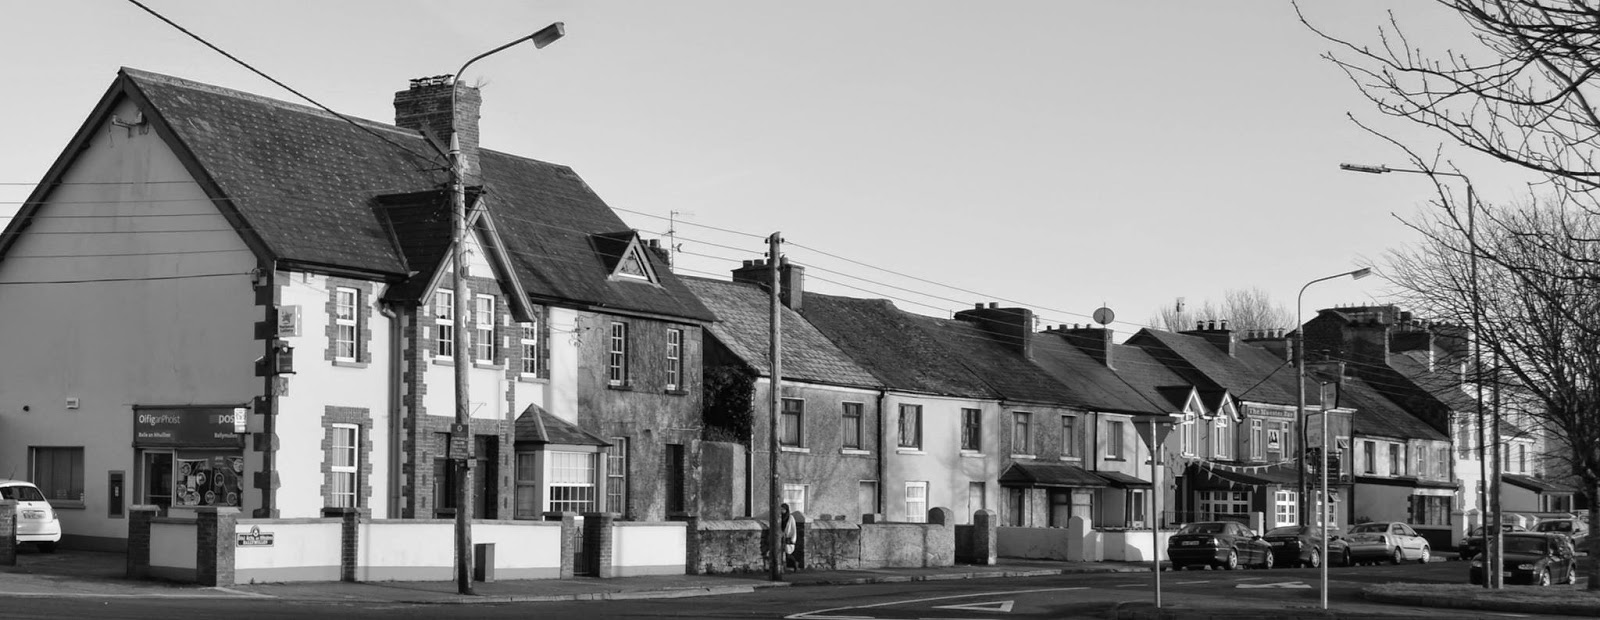 Listowel connection ballymullen jail the late helen leahy and changes on church st - Post office working today ...